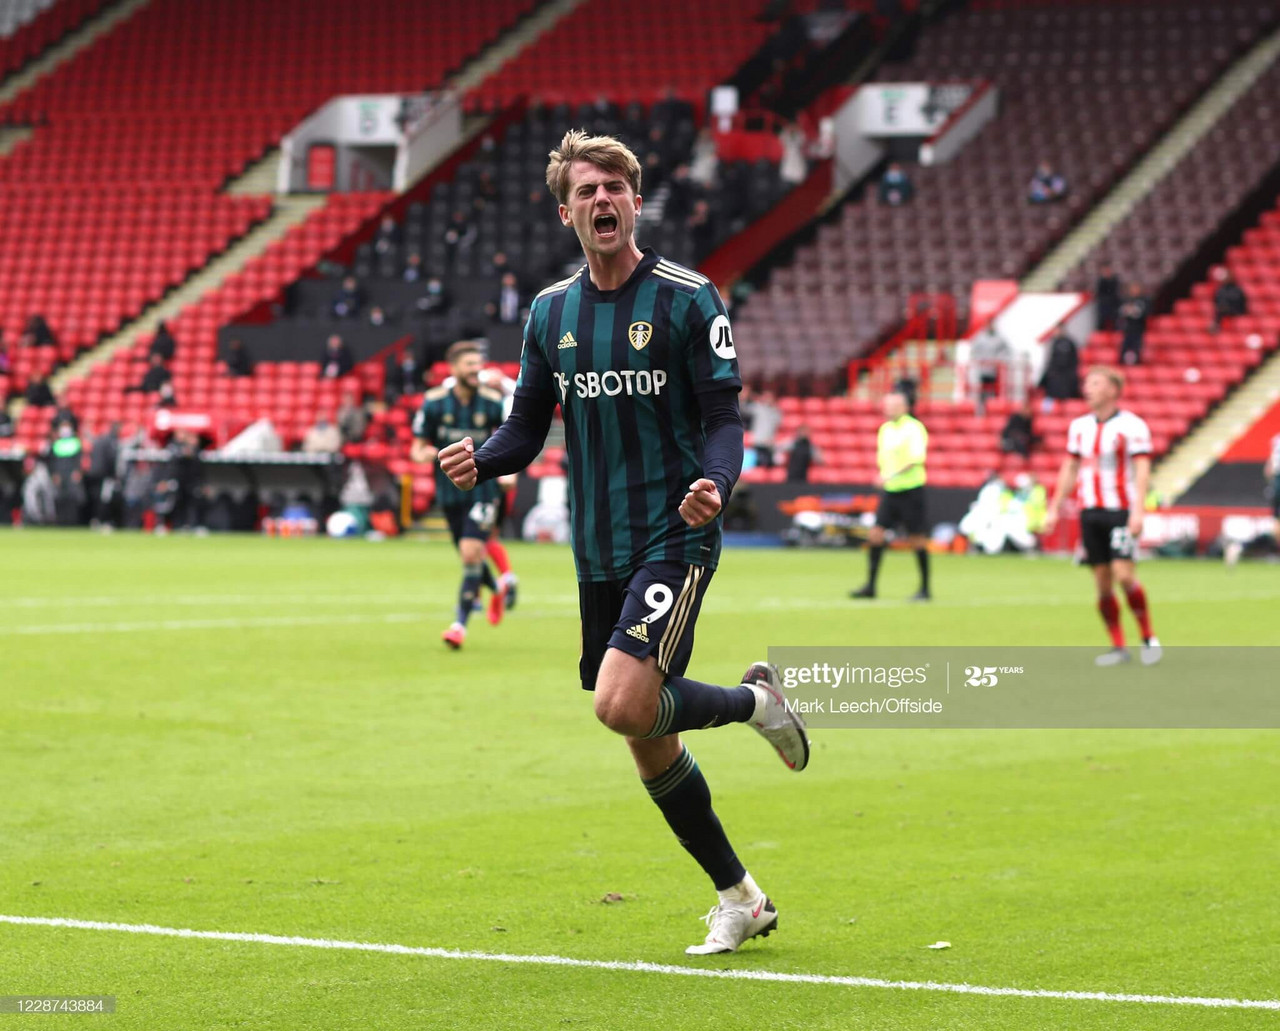 Bamford win's PFA Fan's Player of the Month award